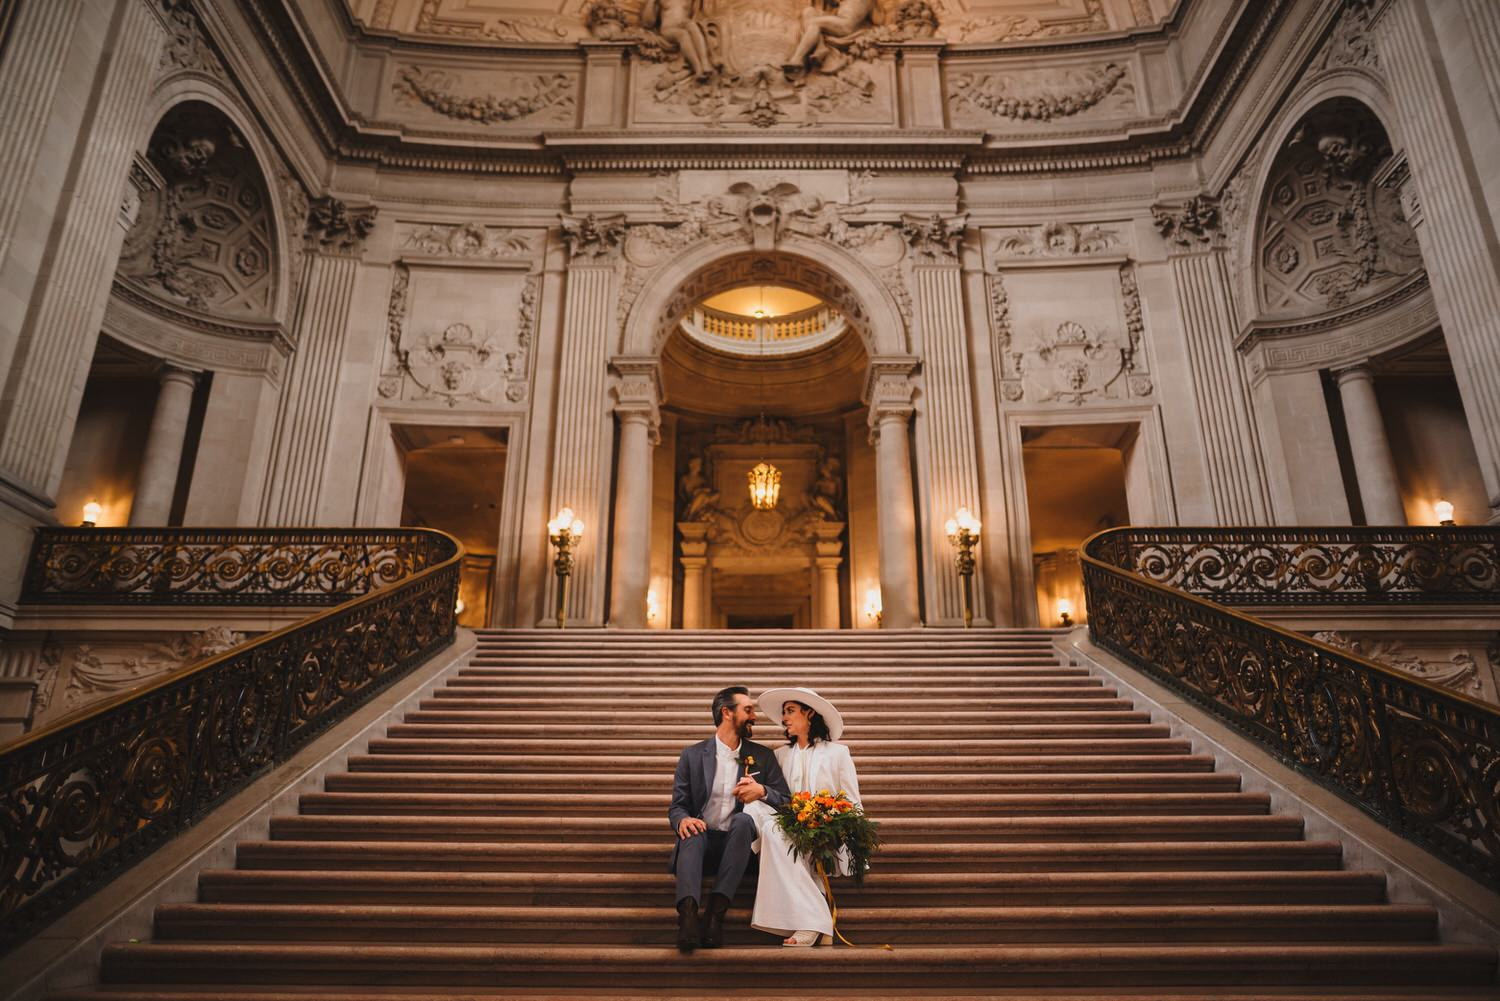 Great San Francisco City Hall Wedding Photographer